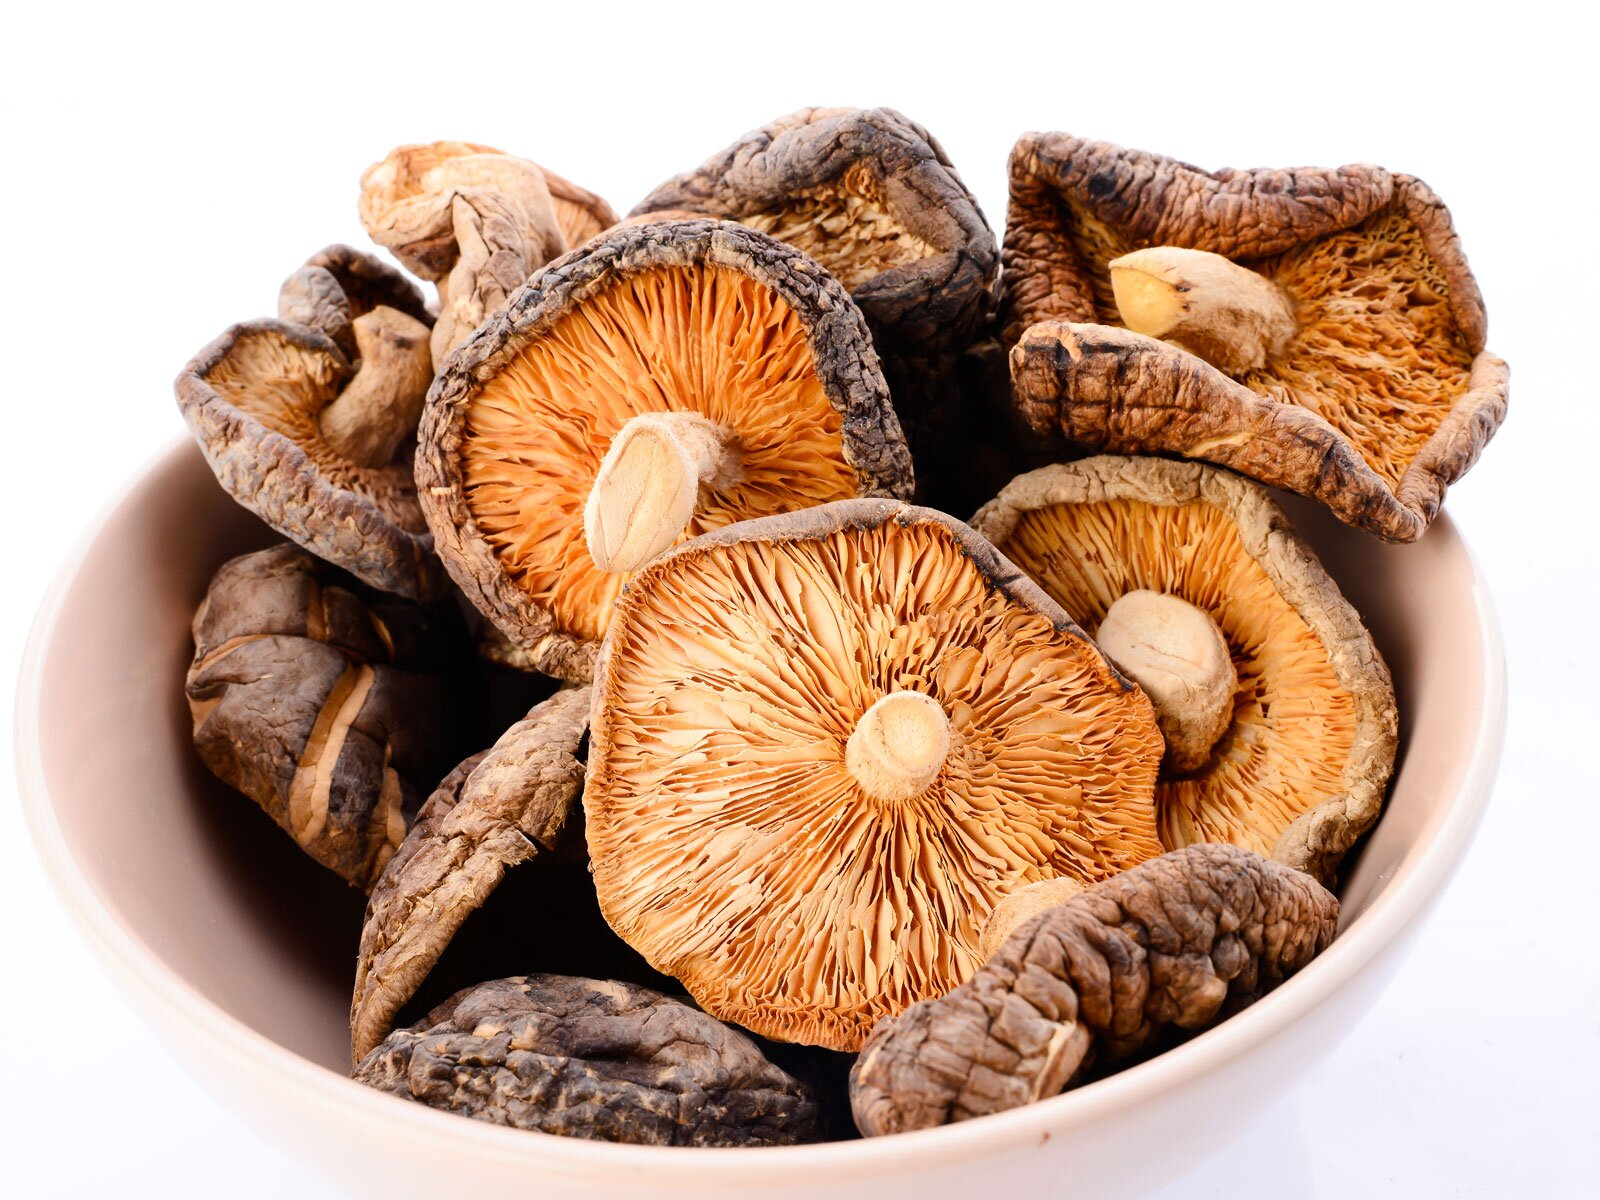 Getting the Best Out of Dried Mushrooms